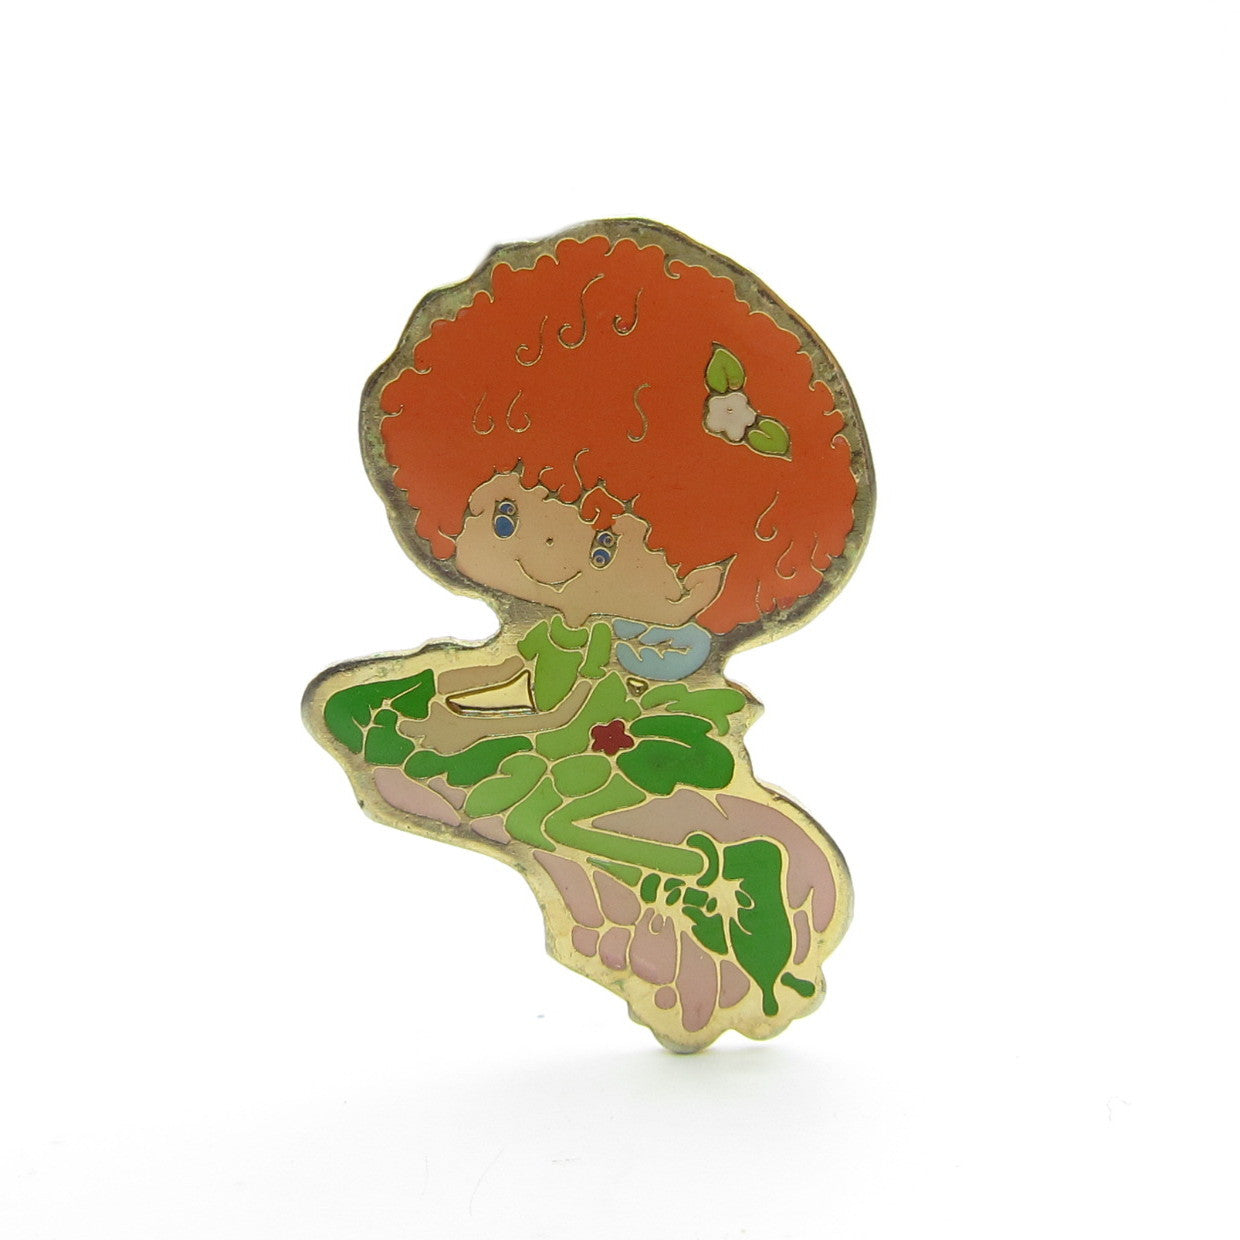 Meadow Morn Herself the Elf pin